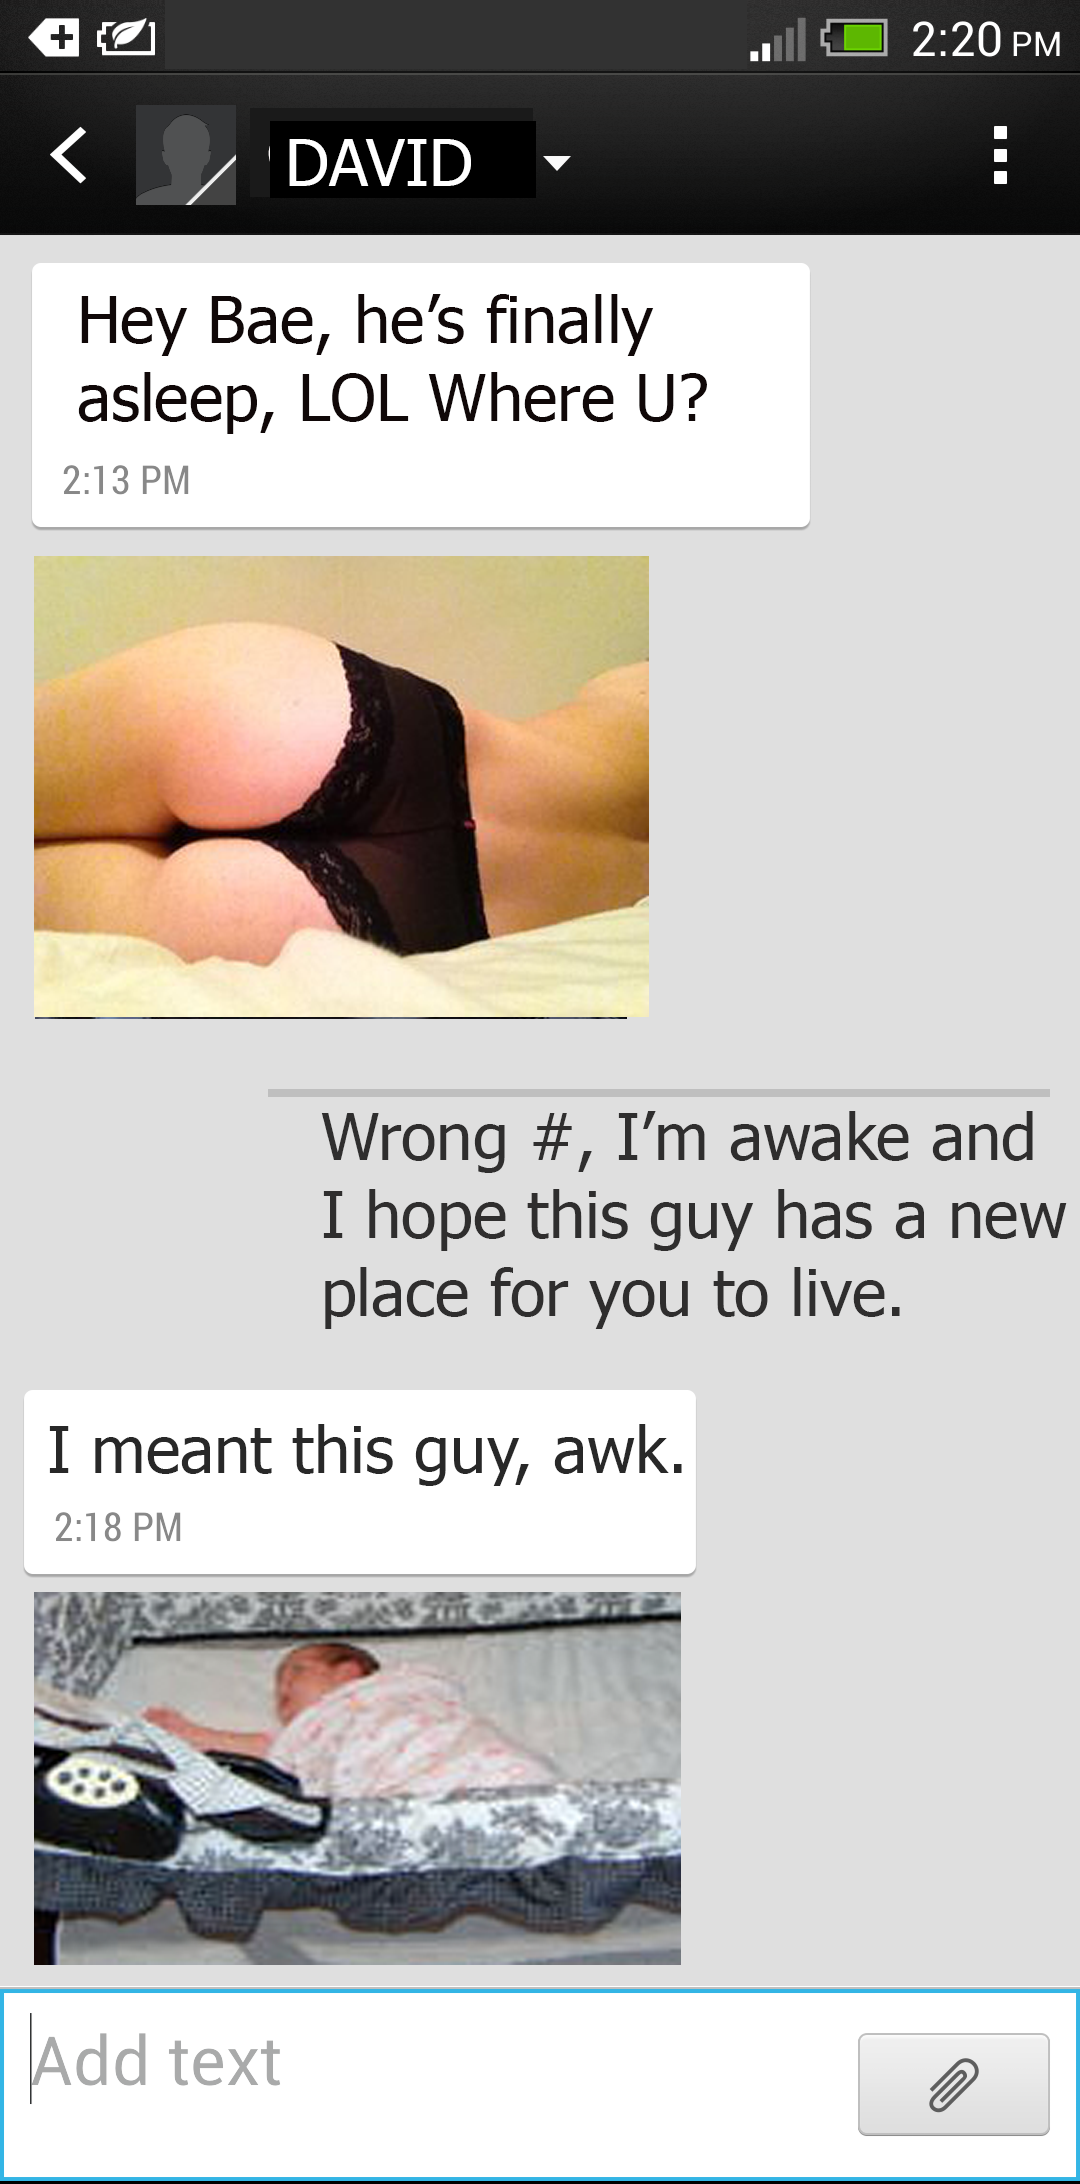 Text Message Naked Pic Funny - Porno Photo-6935